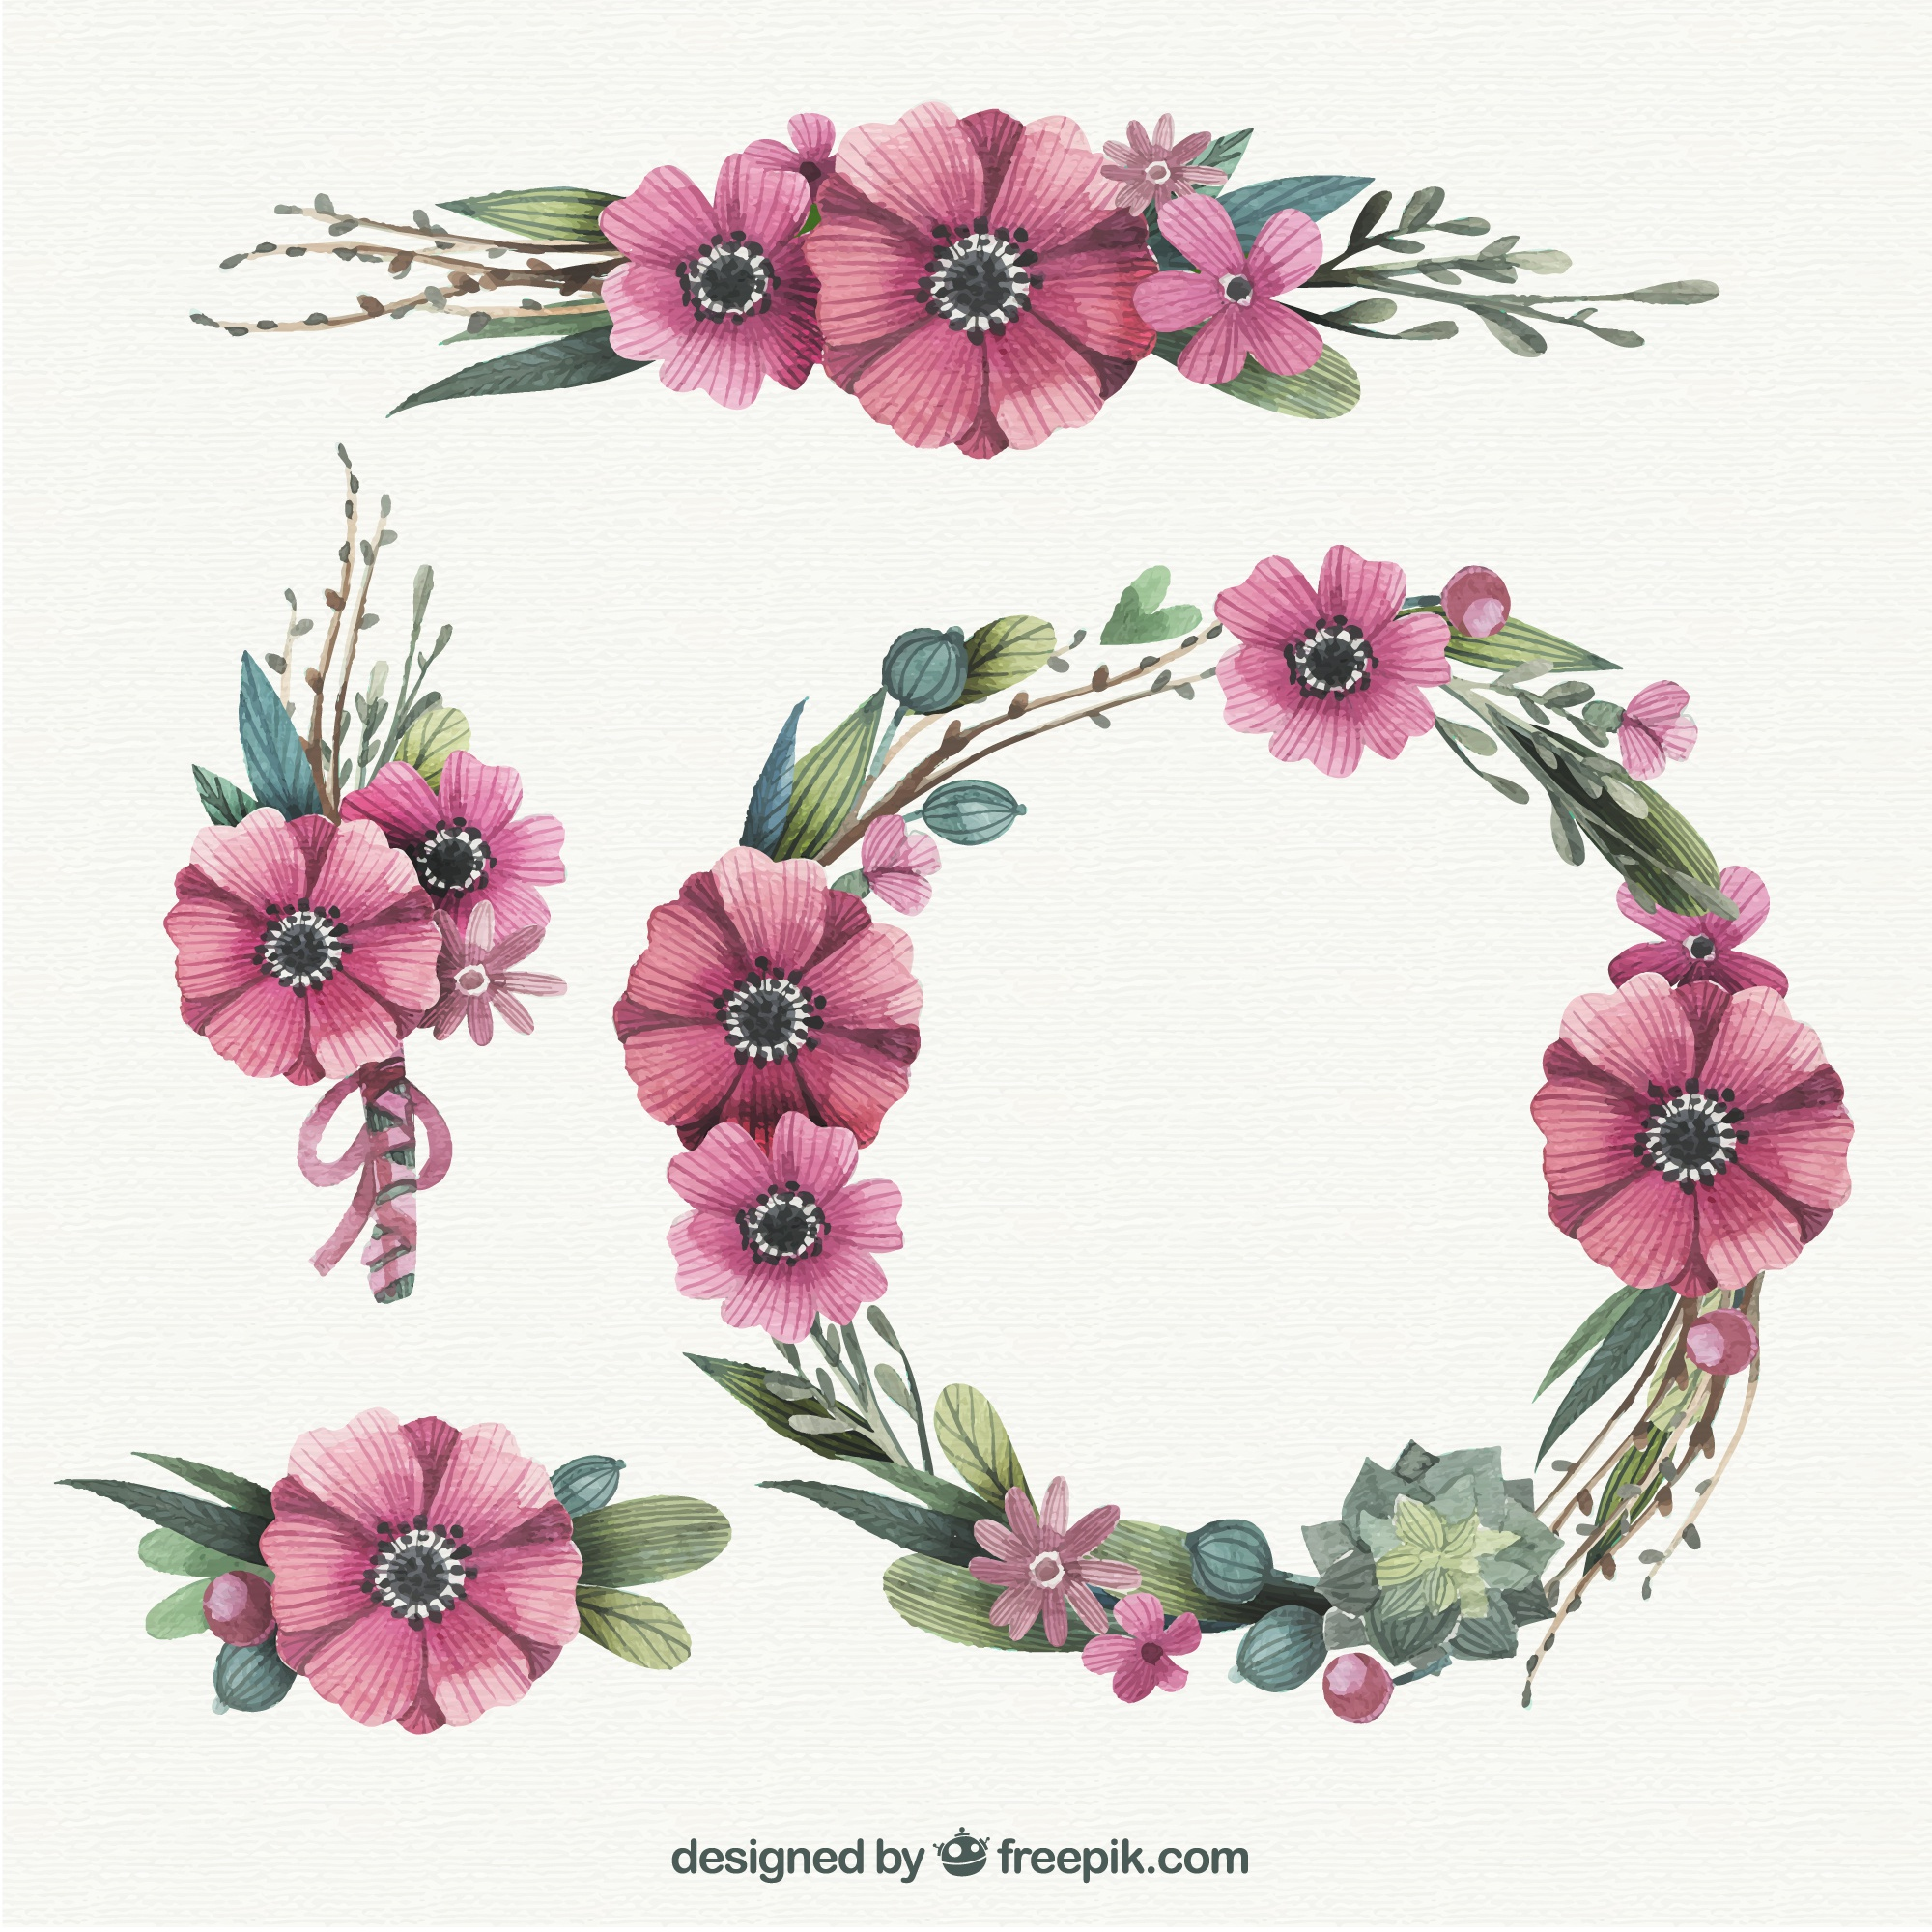 Hand painted floral wreath